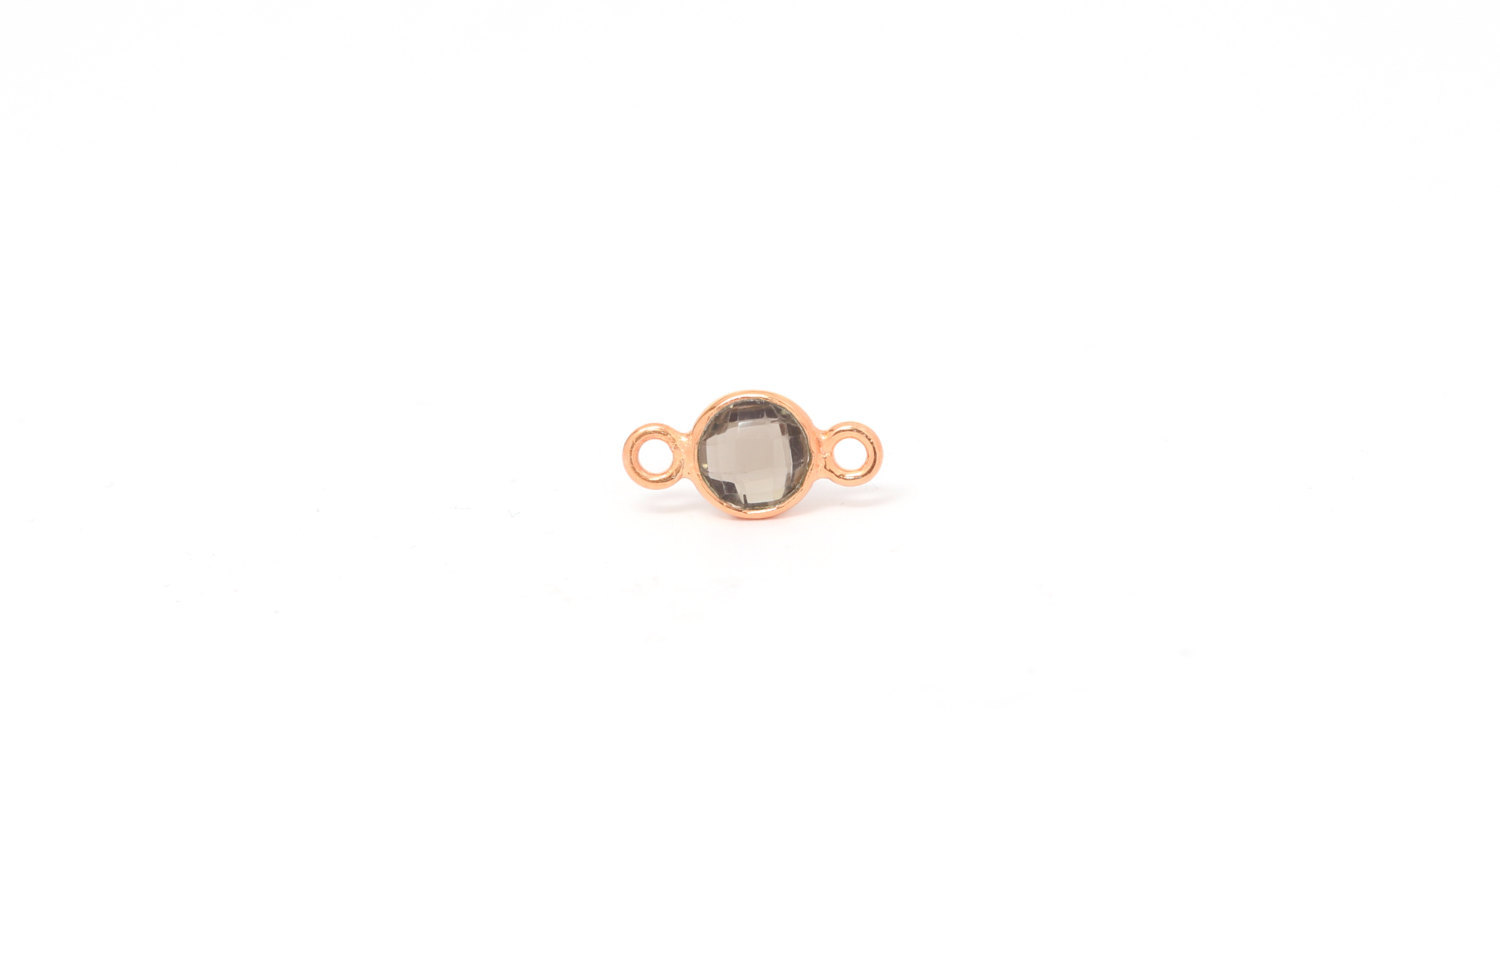 Primary image for Connector, Rose Gold Plated Sterling Silver, Smokey Quartz, 6mm, 1pc (7341)/1